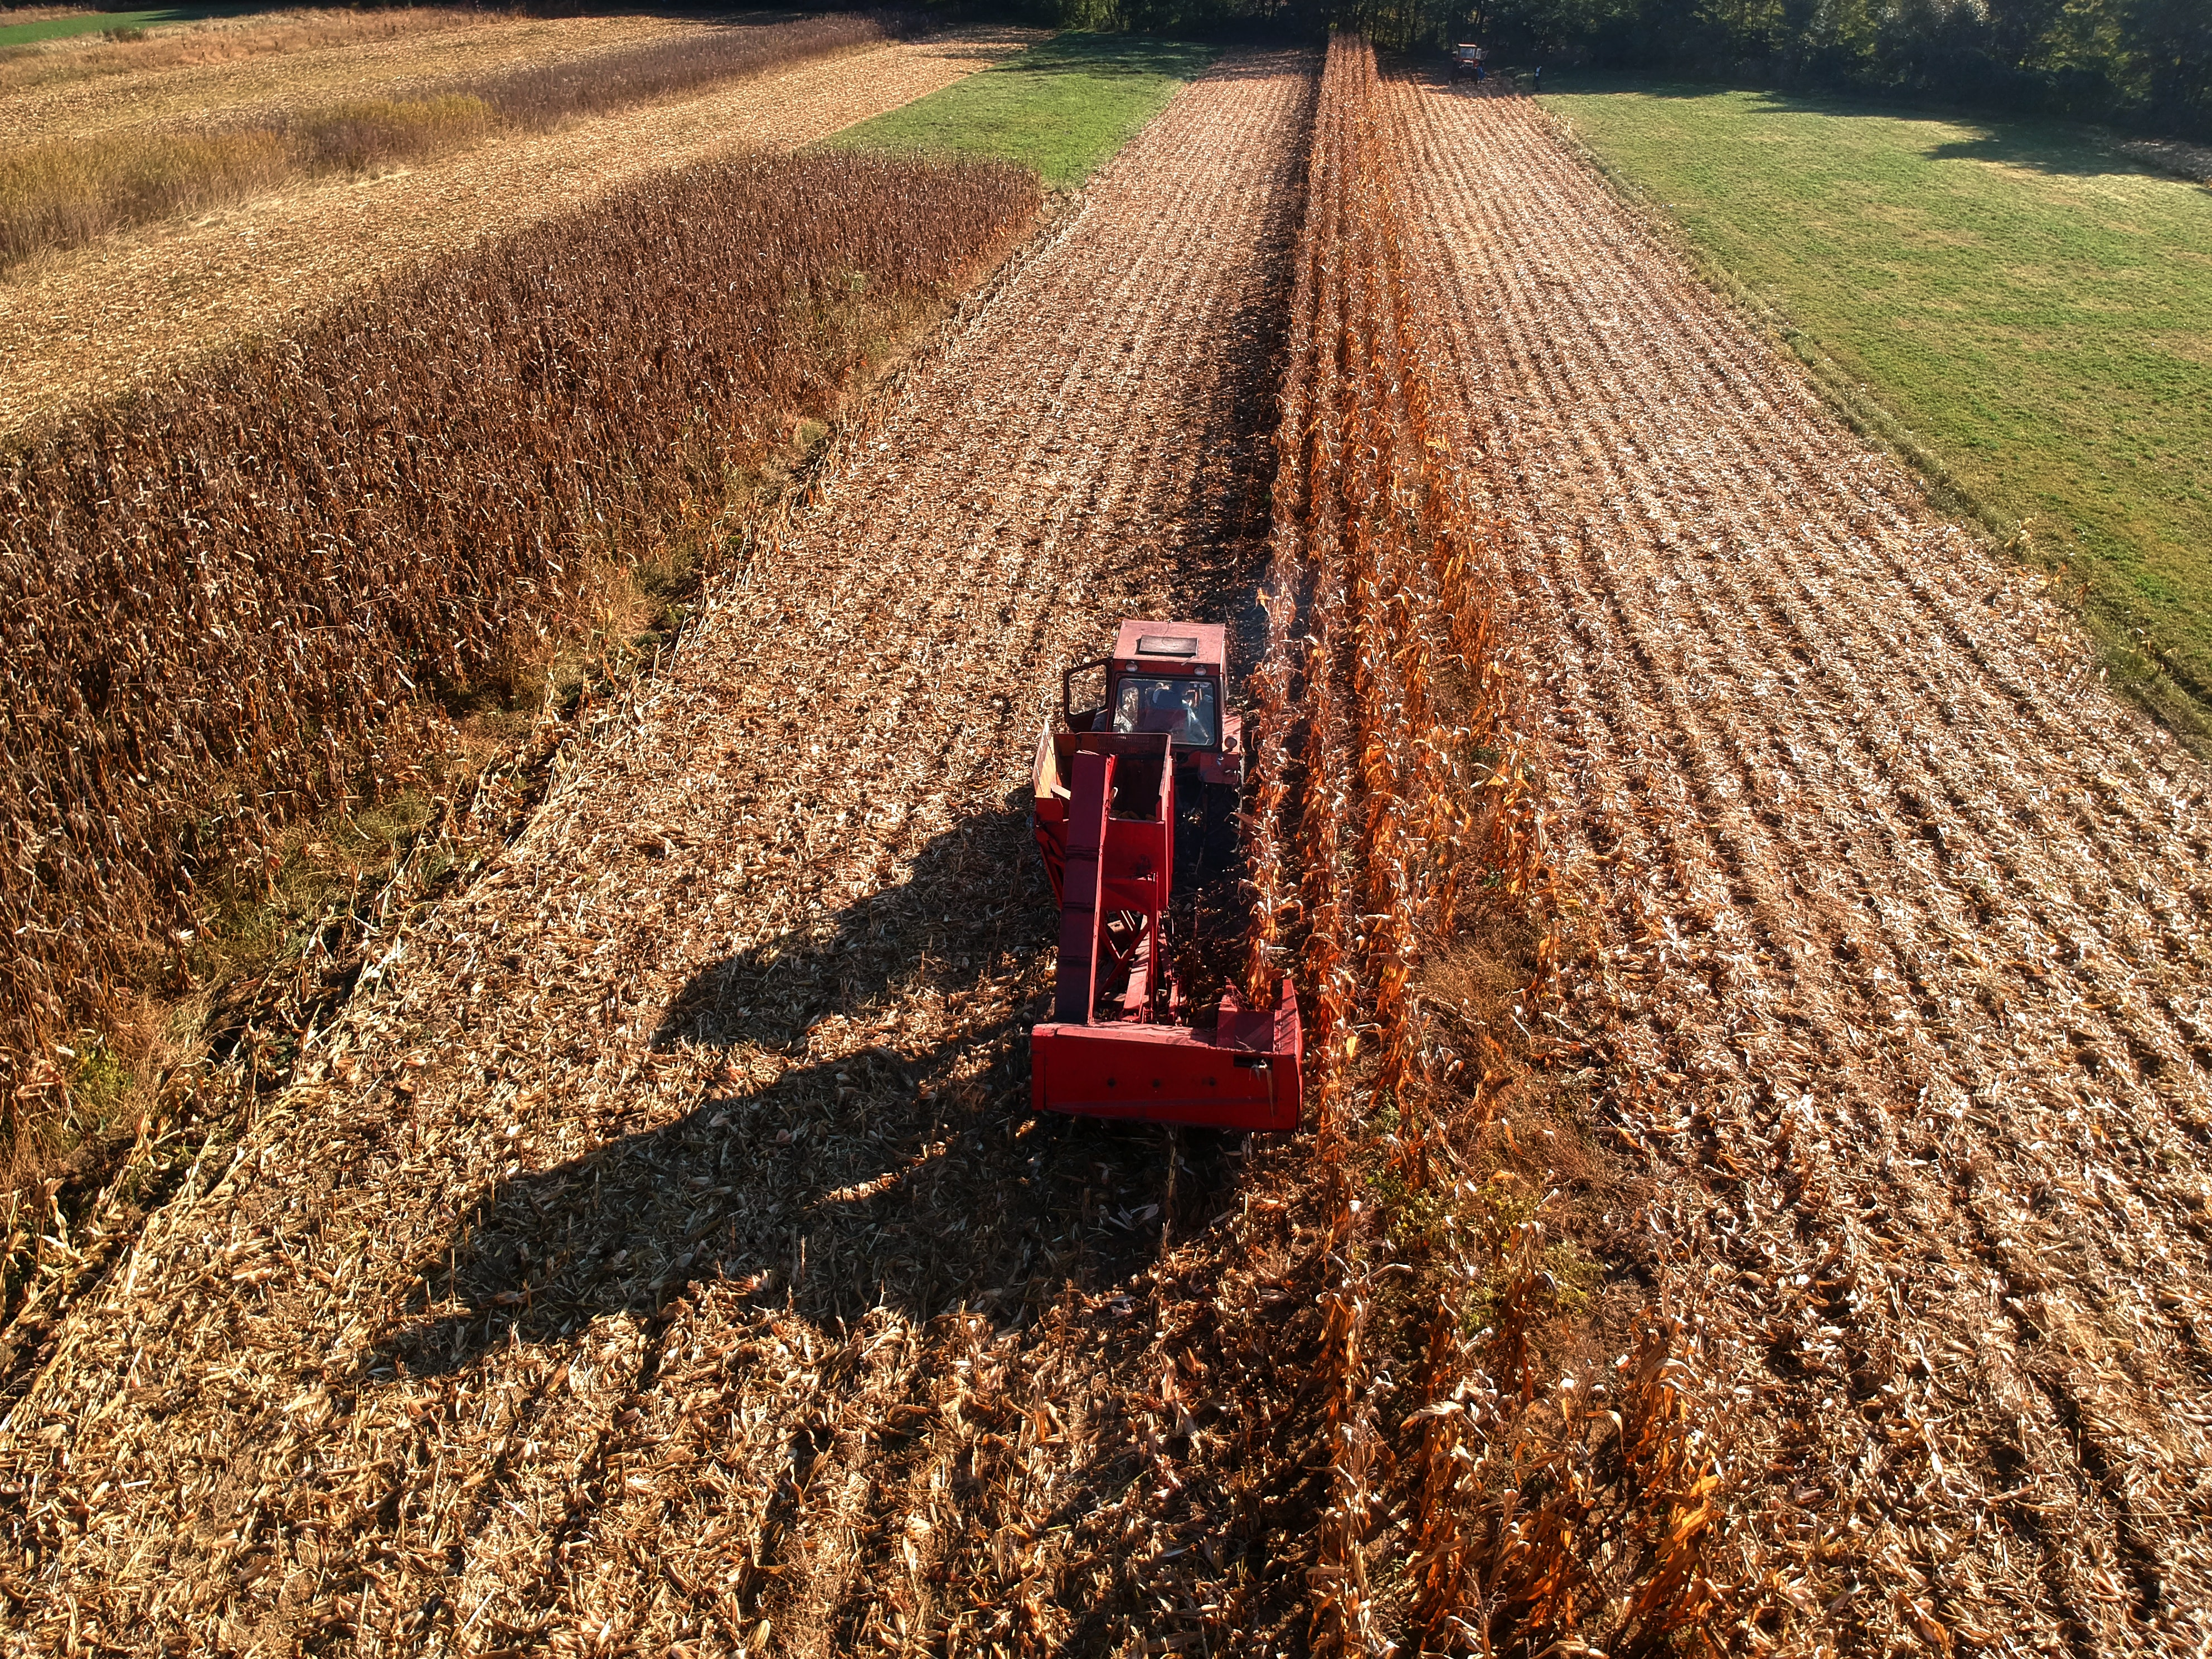 Red tractor harvesting field